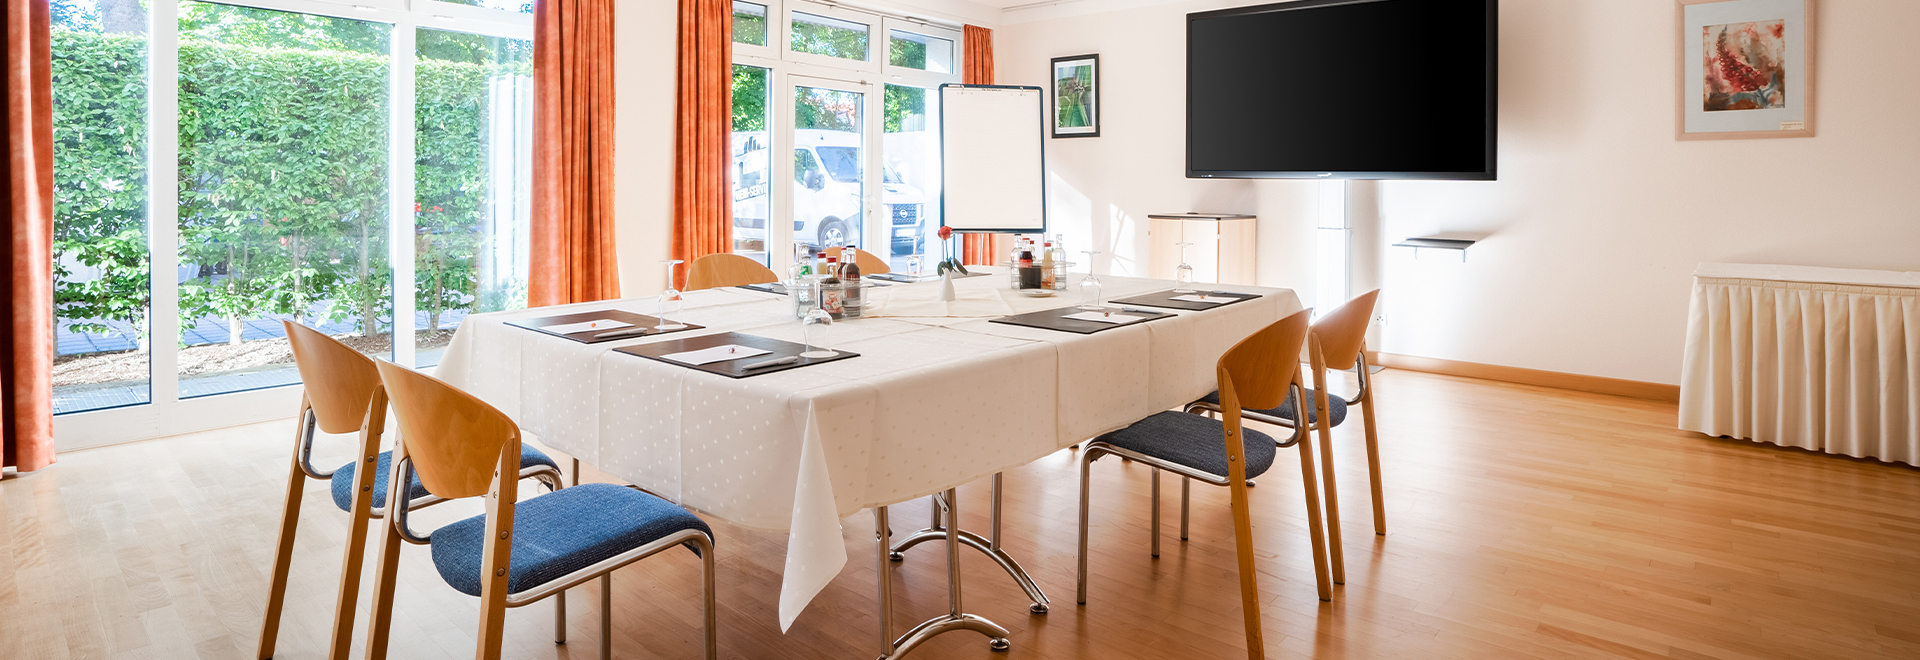 Quality Hotel am Tierpark_Meeting